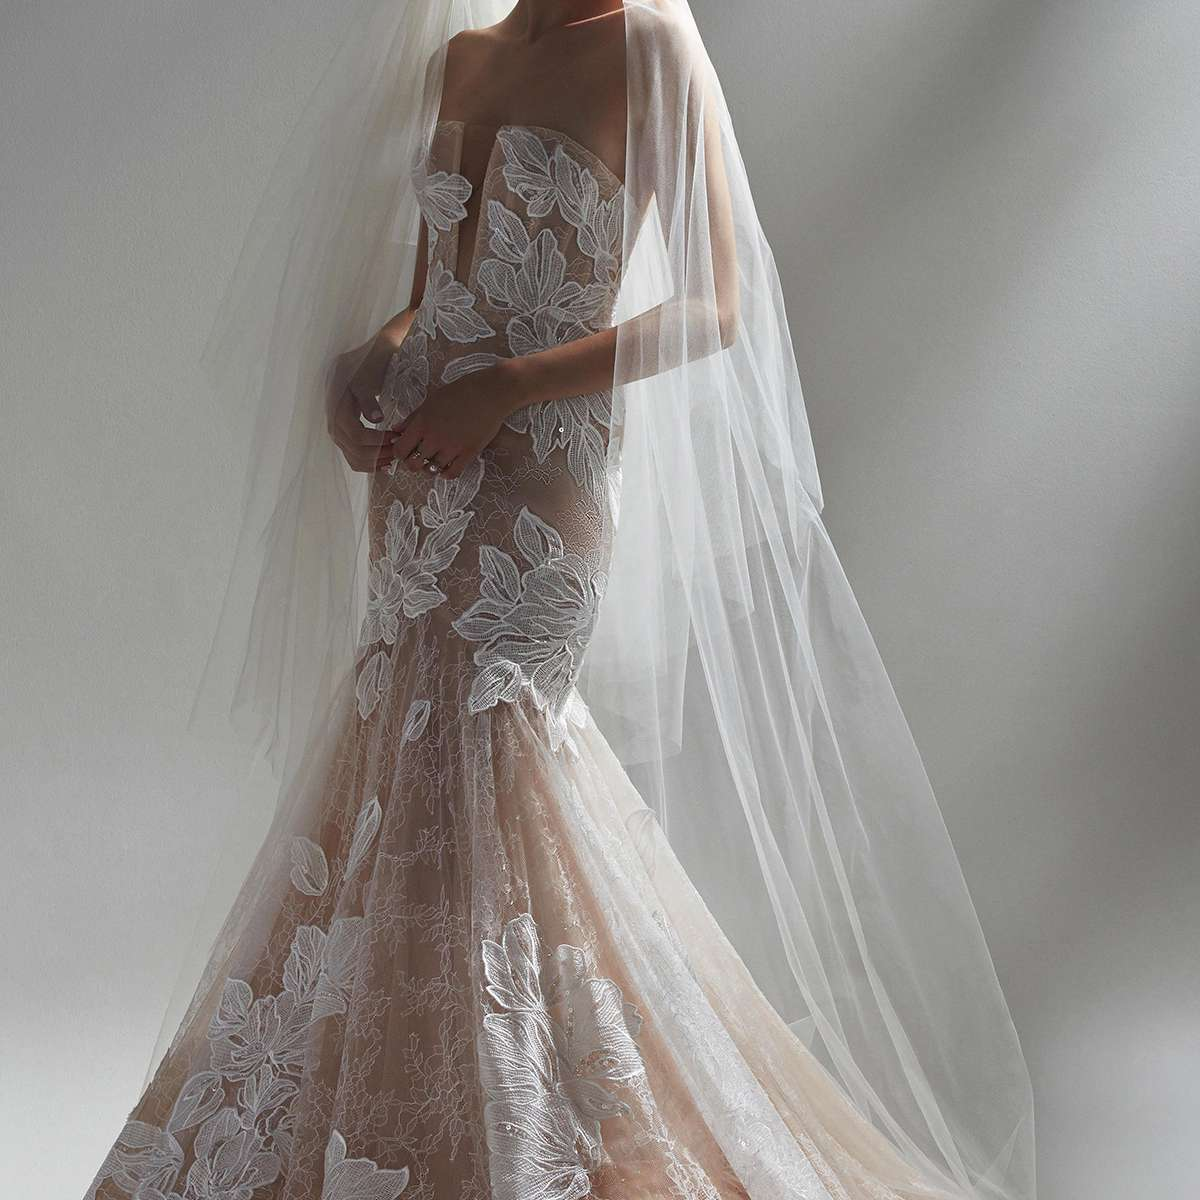 Model in sheer fit and flare wedding gown with floral cutouts